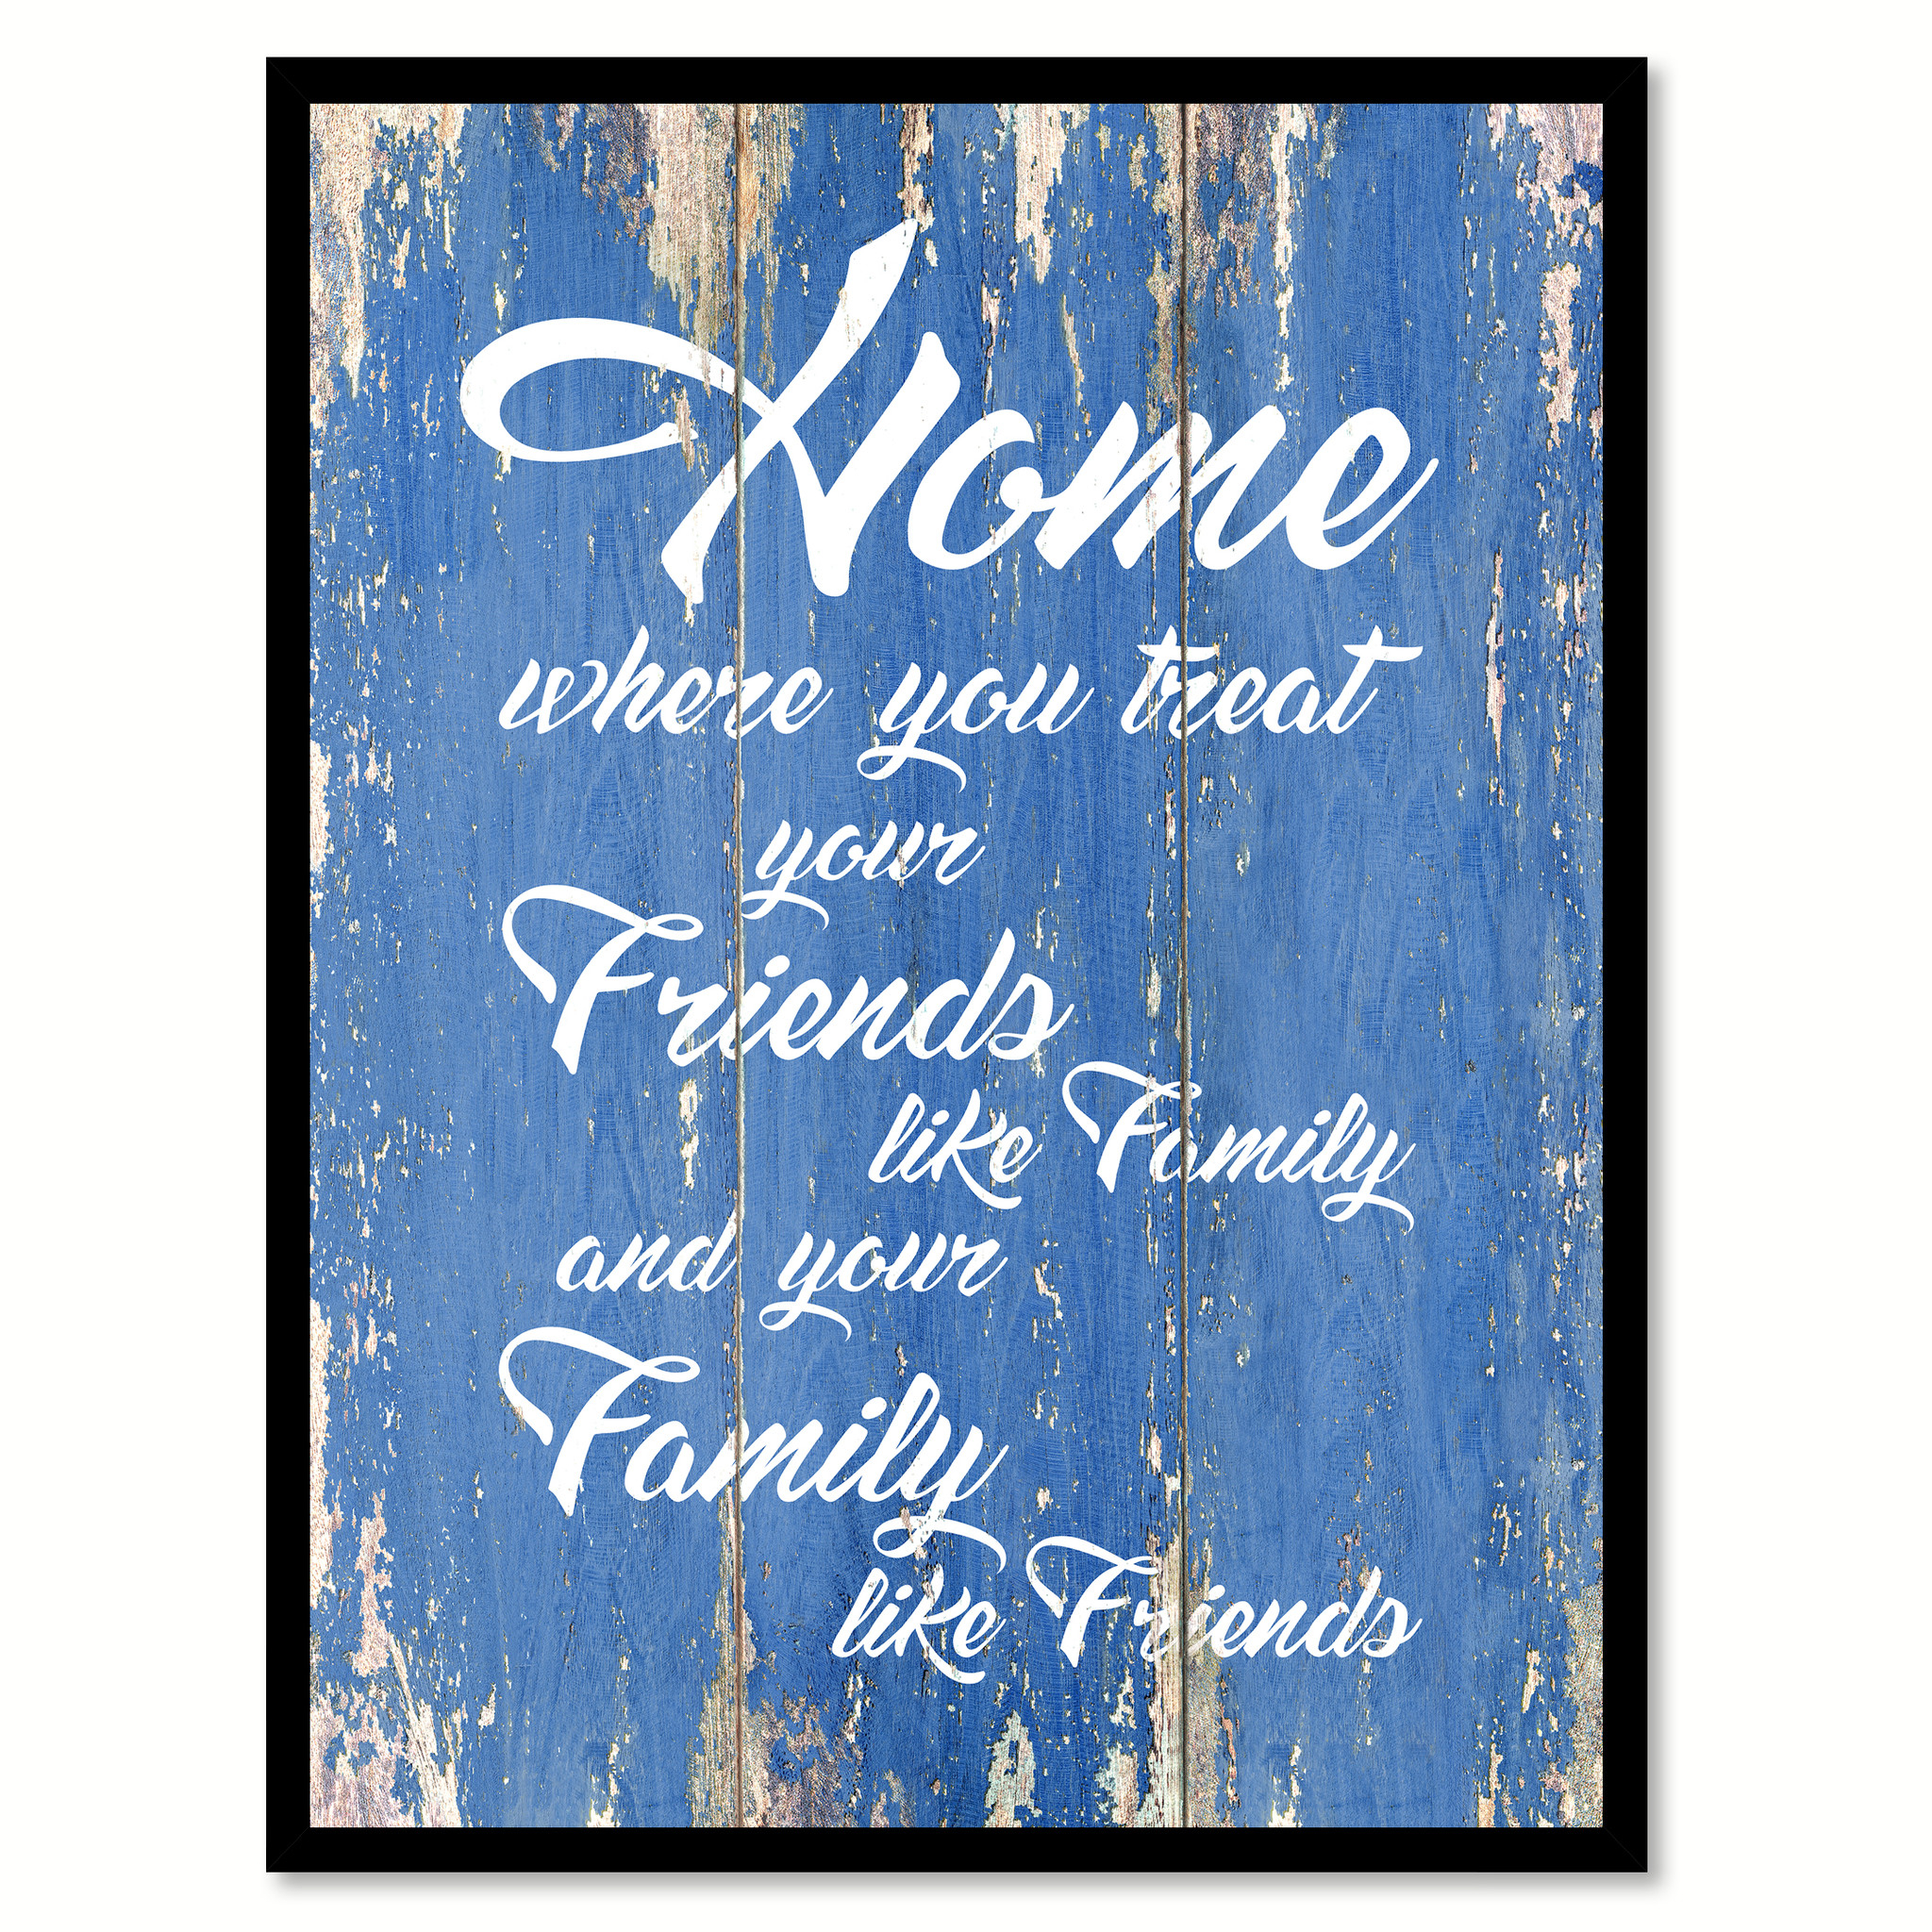 "Home Where You Treat Your Friends Like Family Quote Saying Canvas Print with Picture Frame Home Decor Wall Art Gift Ideas 121833 - 7""x9\"""